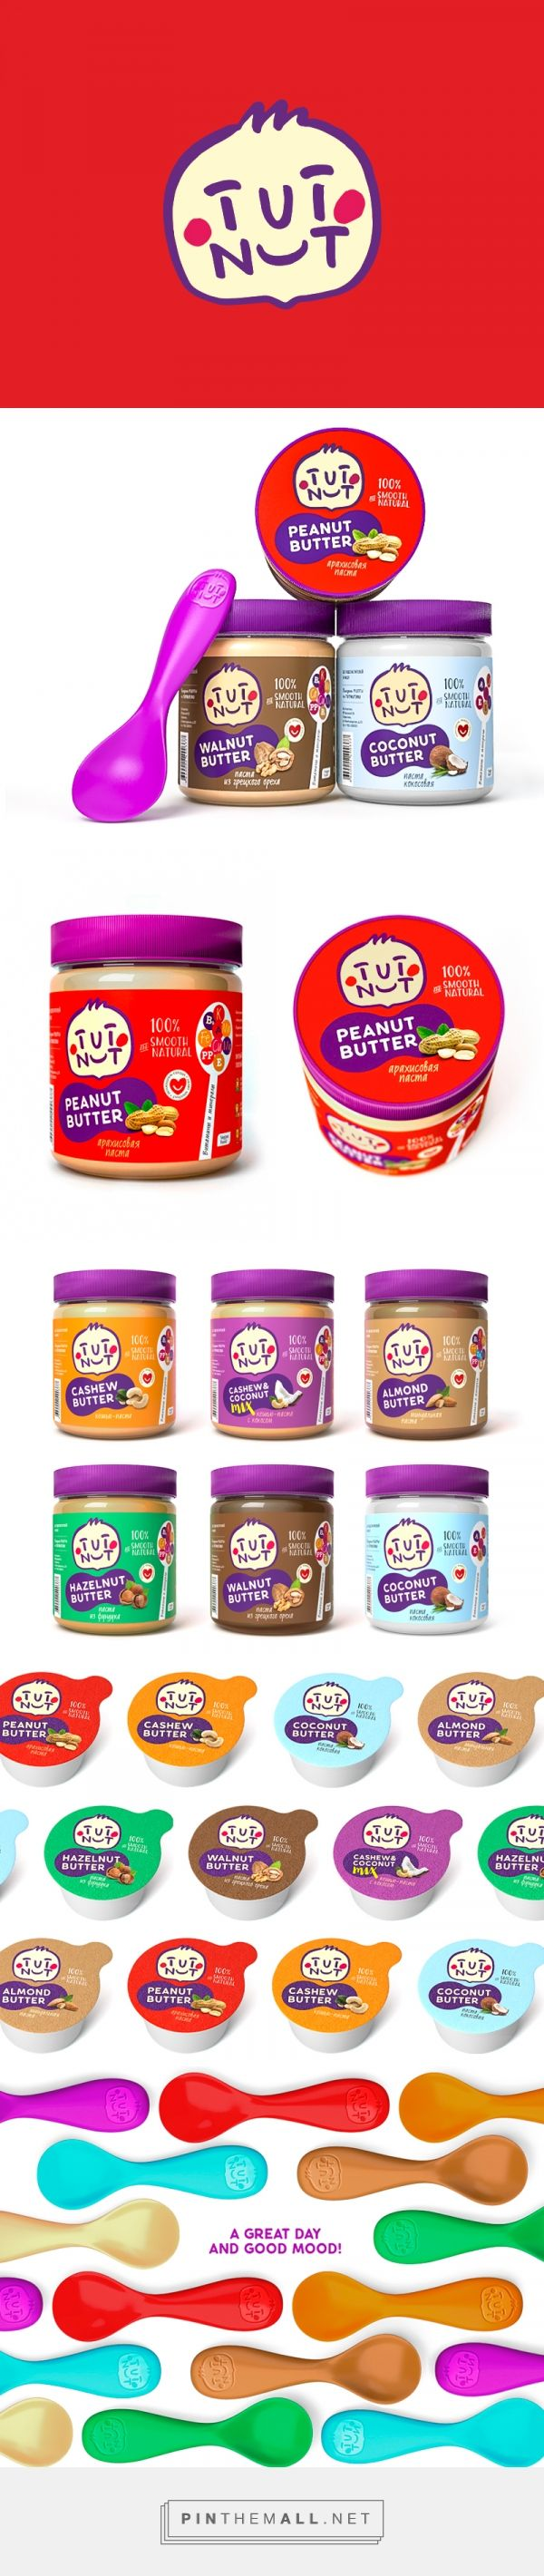 Tut Nut on Packaging of the World - Creative Package Design Gallery - created via https://pinthemall.net